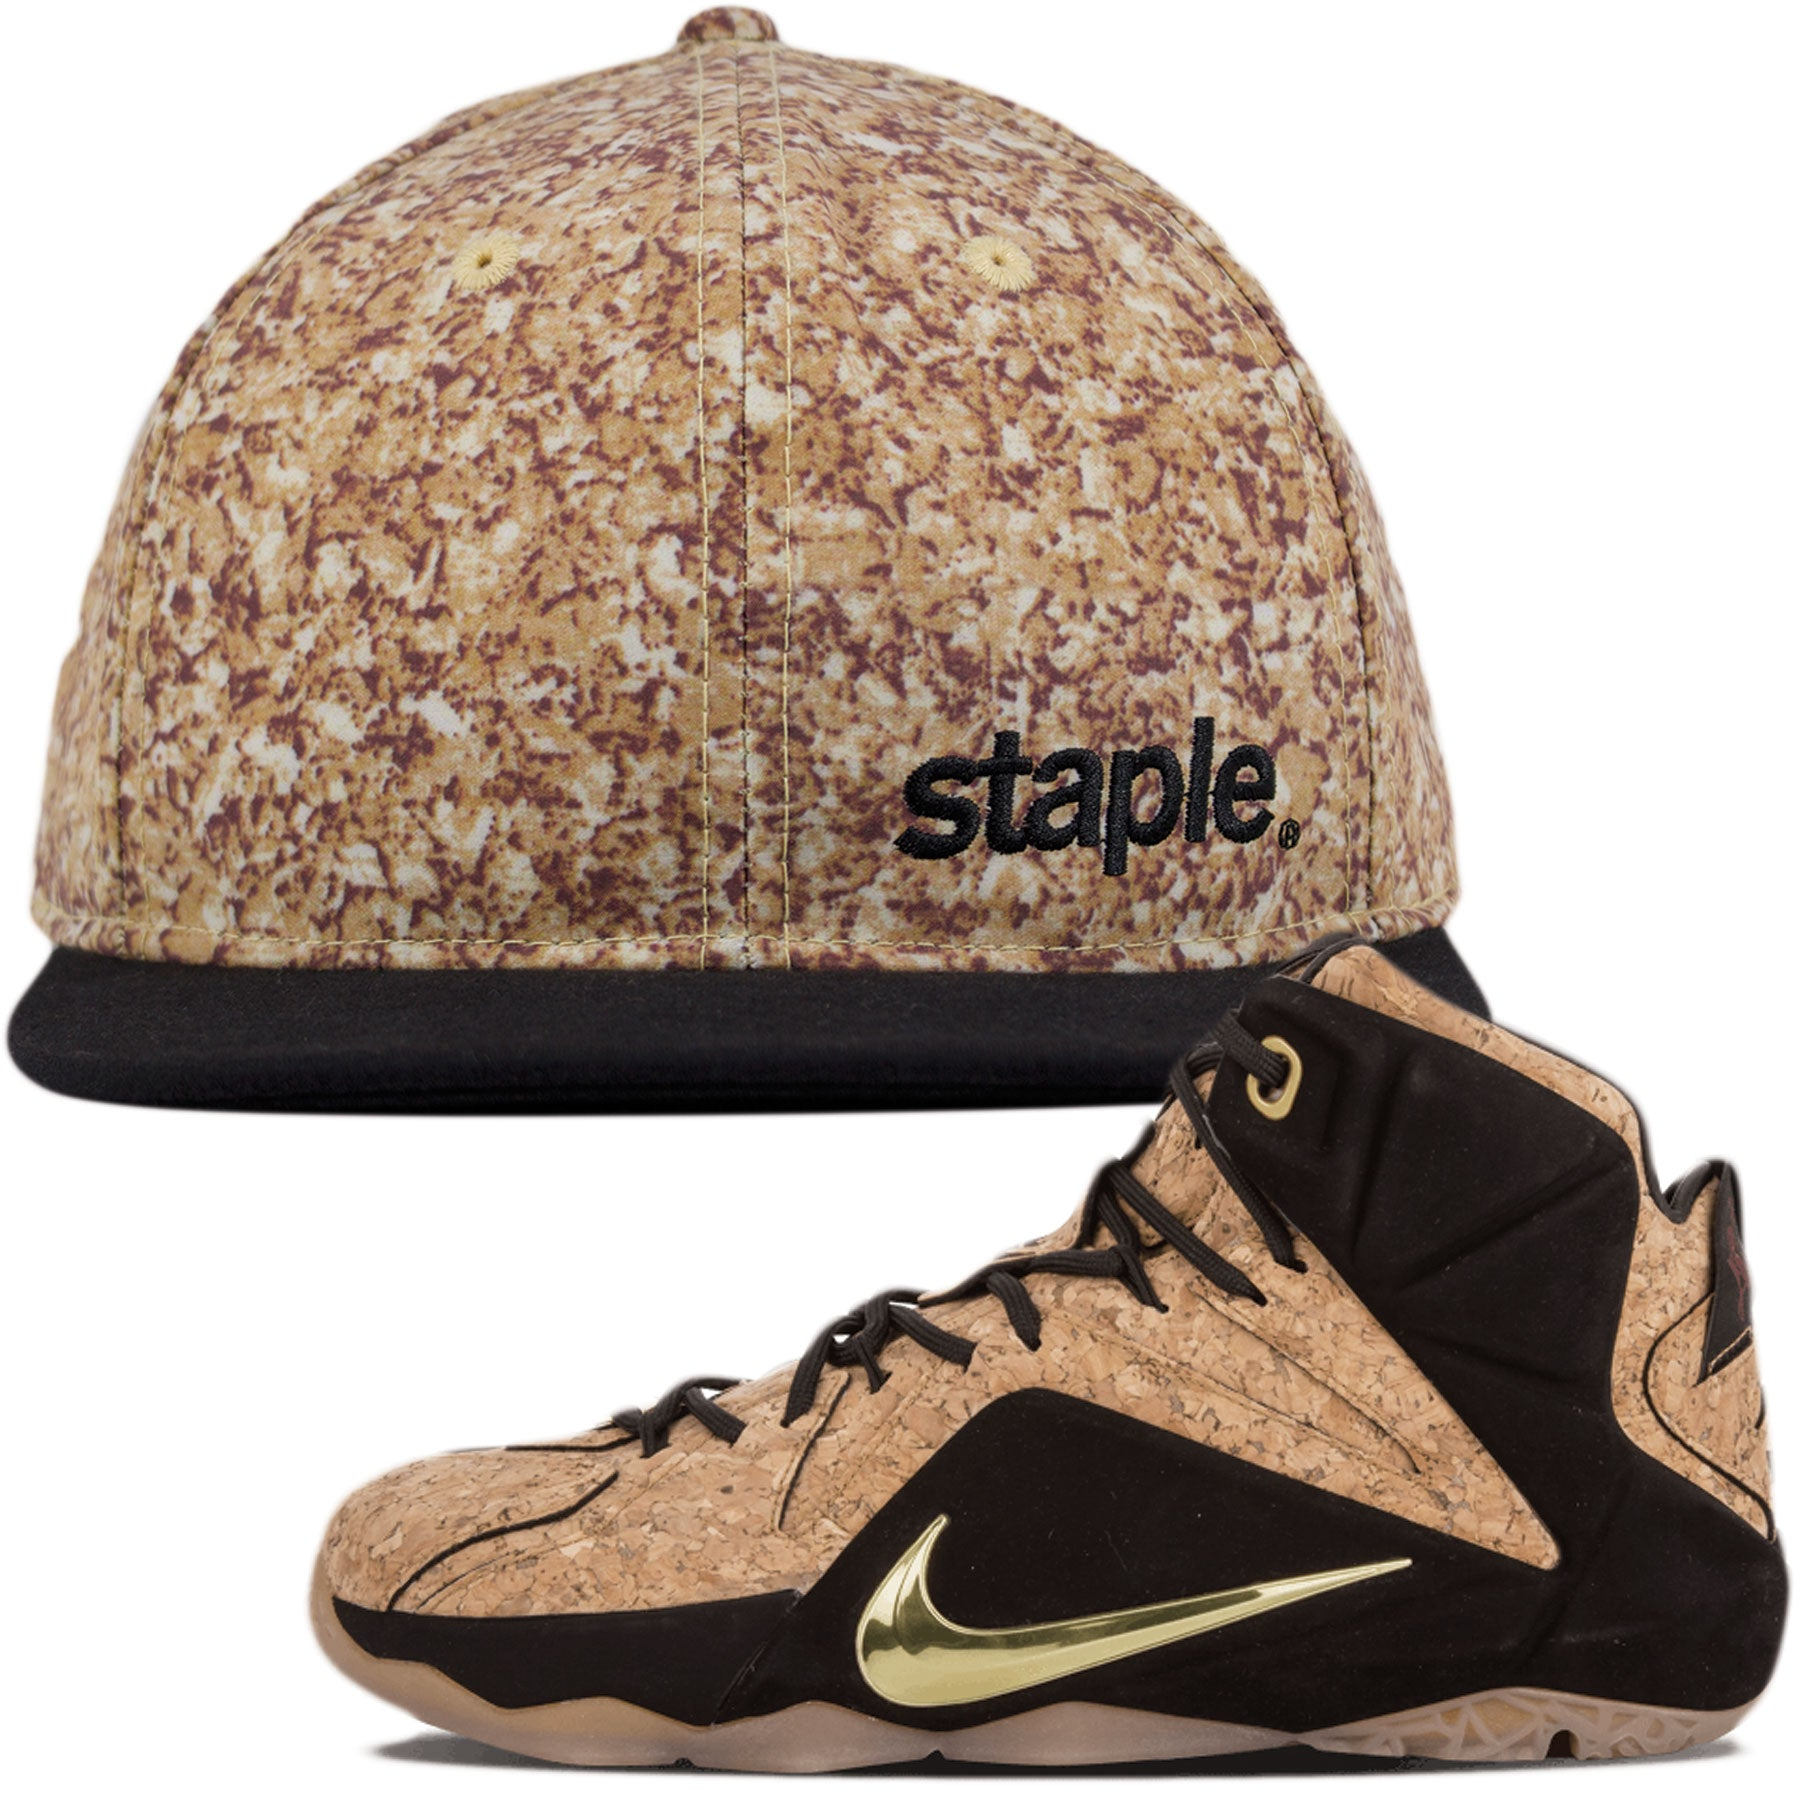 low priced 6eee9 9f112 Lebron 12 Ext Cork Sneaker Matching Snapback Hat